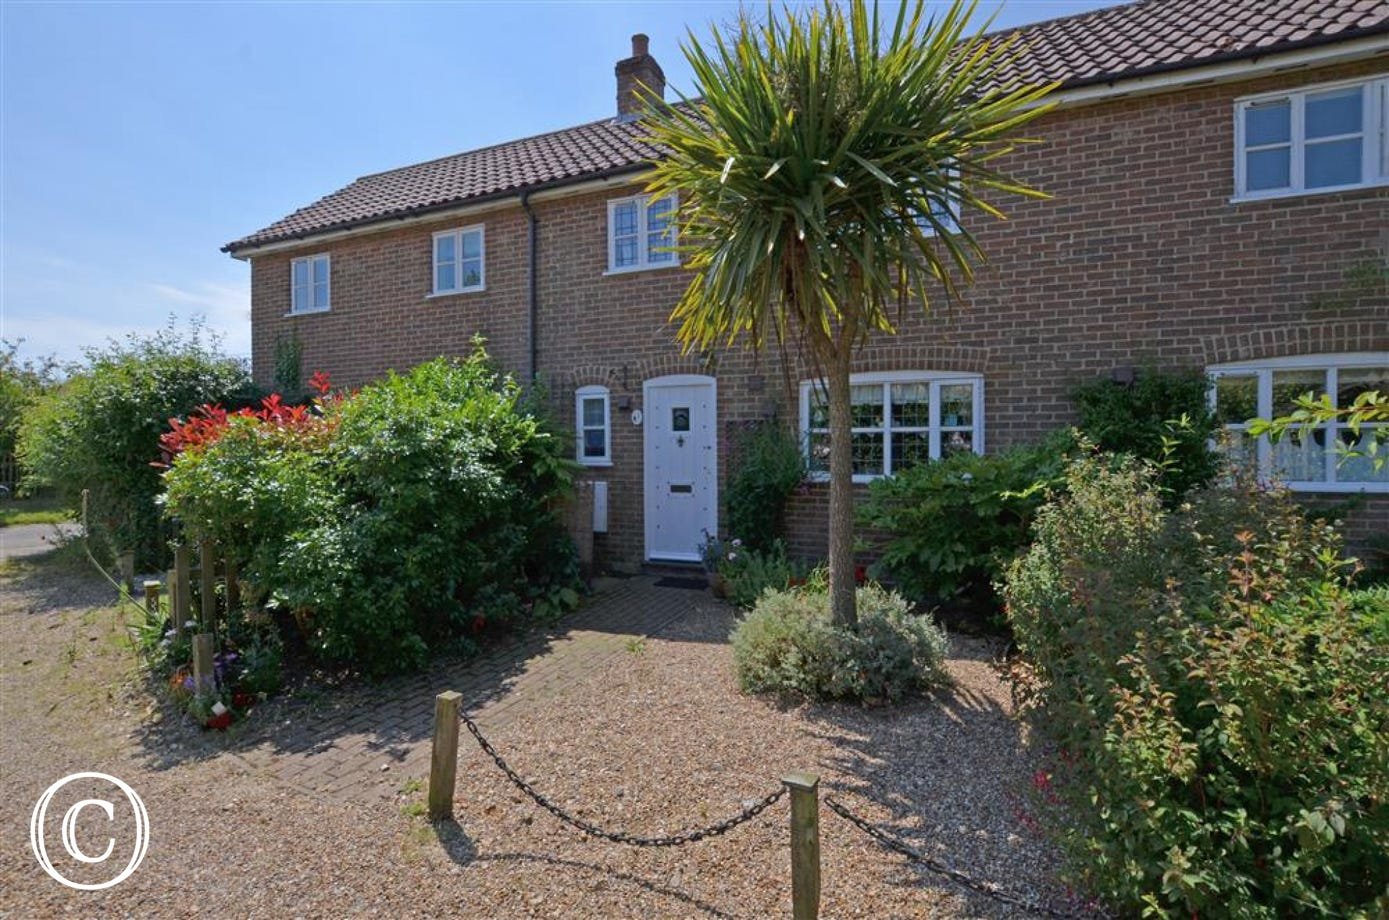 This cute little property in Friston is ideally located to explore Suffolk and is close to Aldeburgh and Thorpeness.